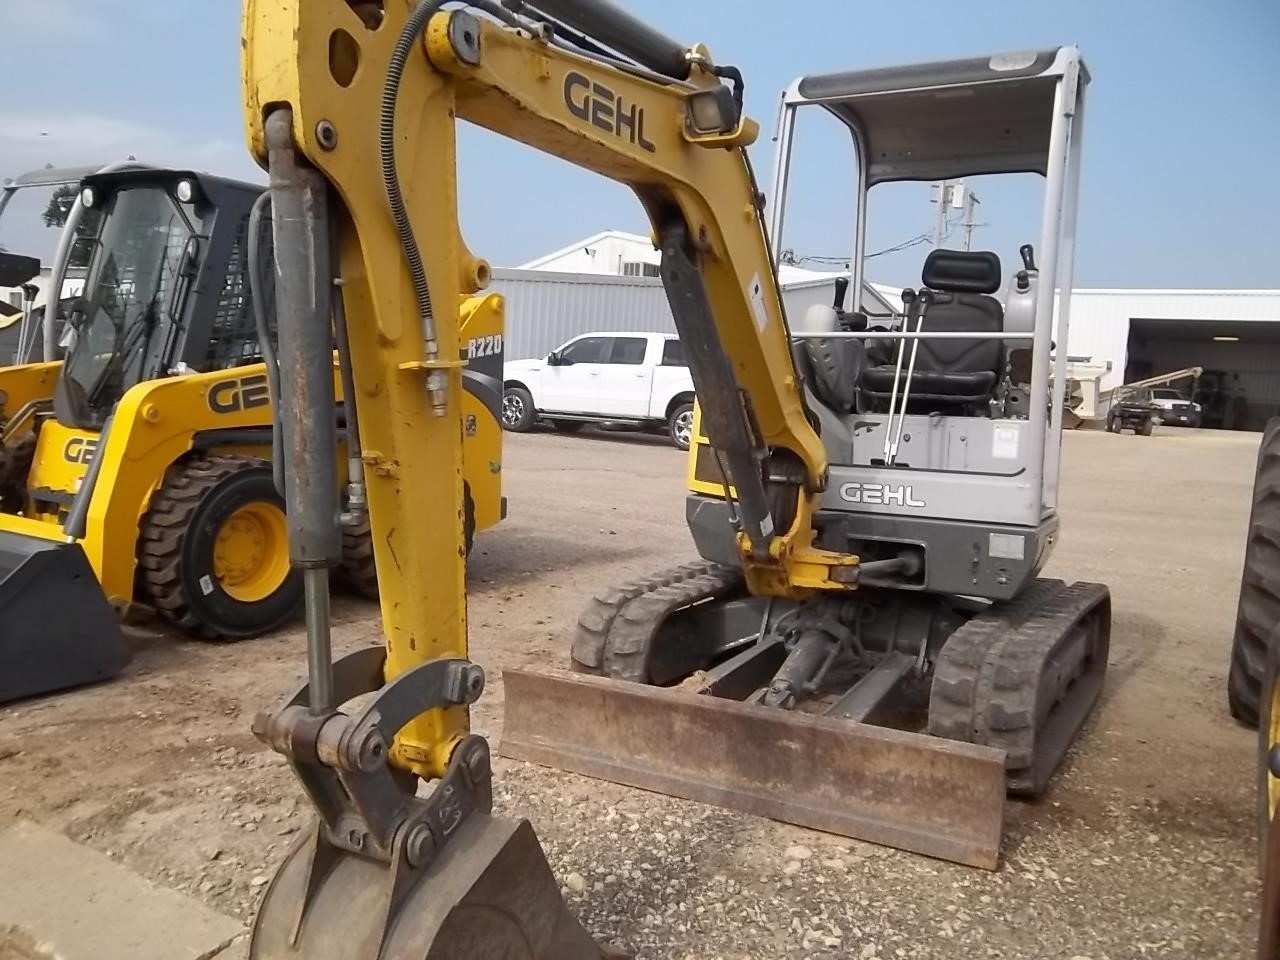 2009 Gehl 283Z Excavators and Mini Excavator